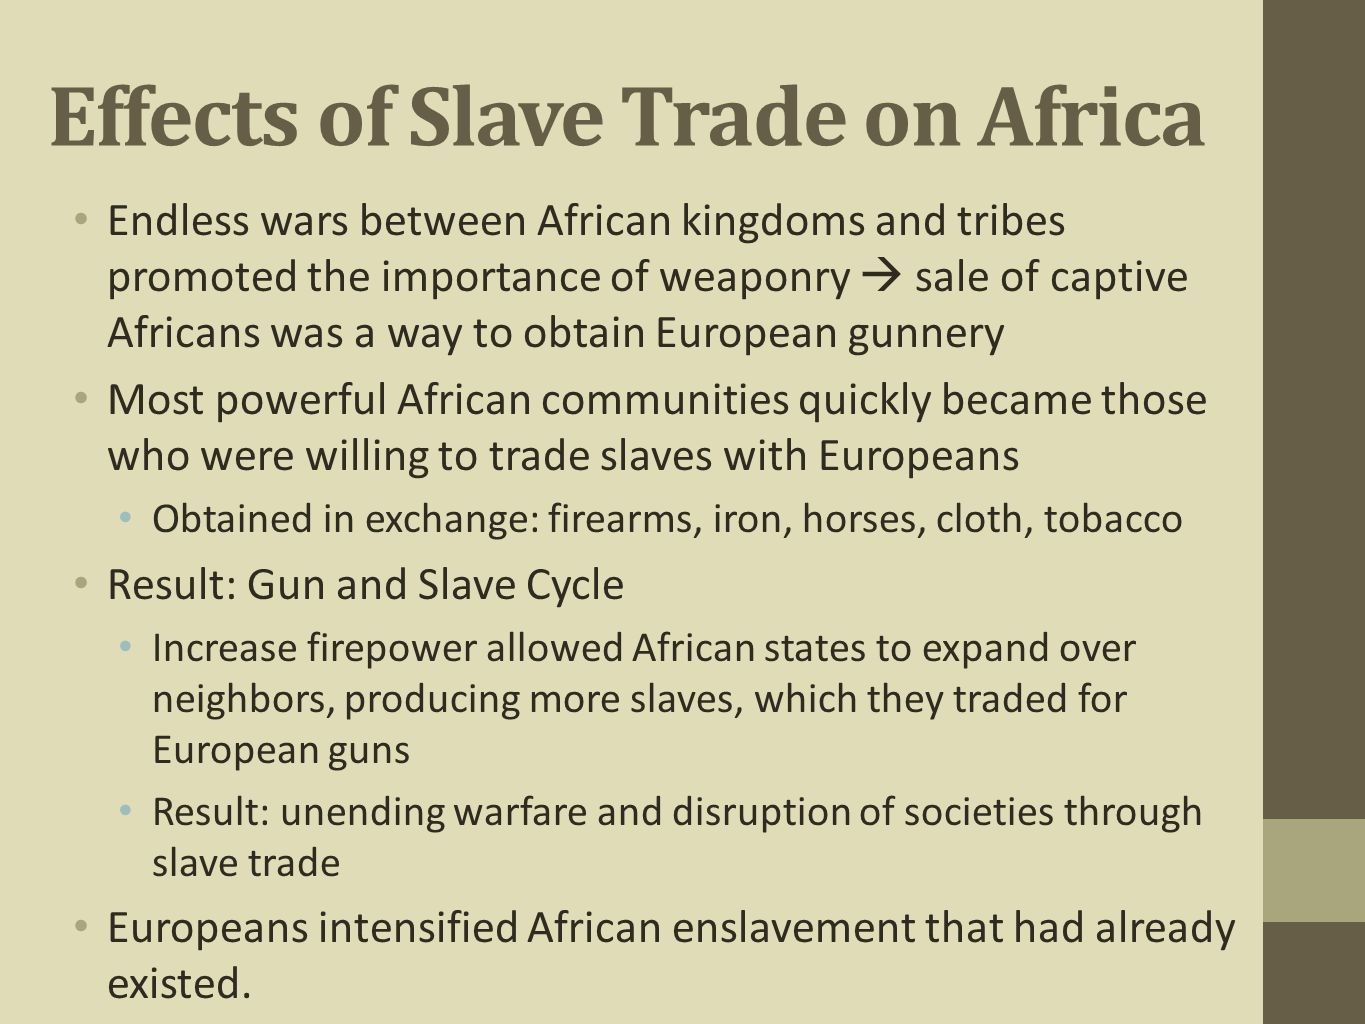 Effects of Slave Trade on Africa